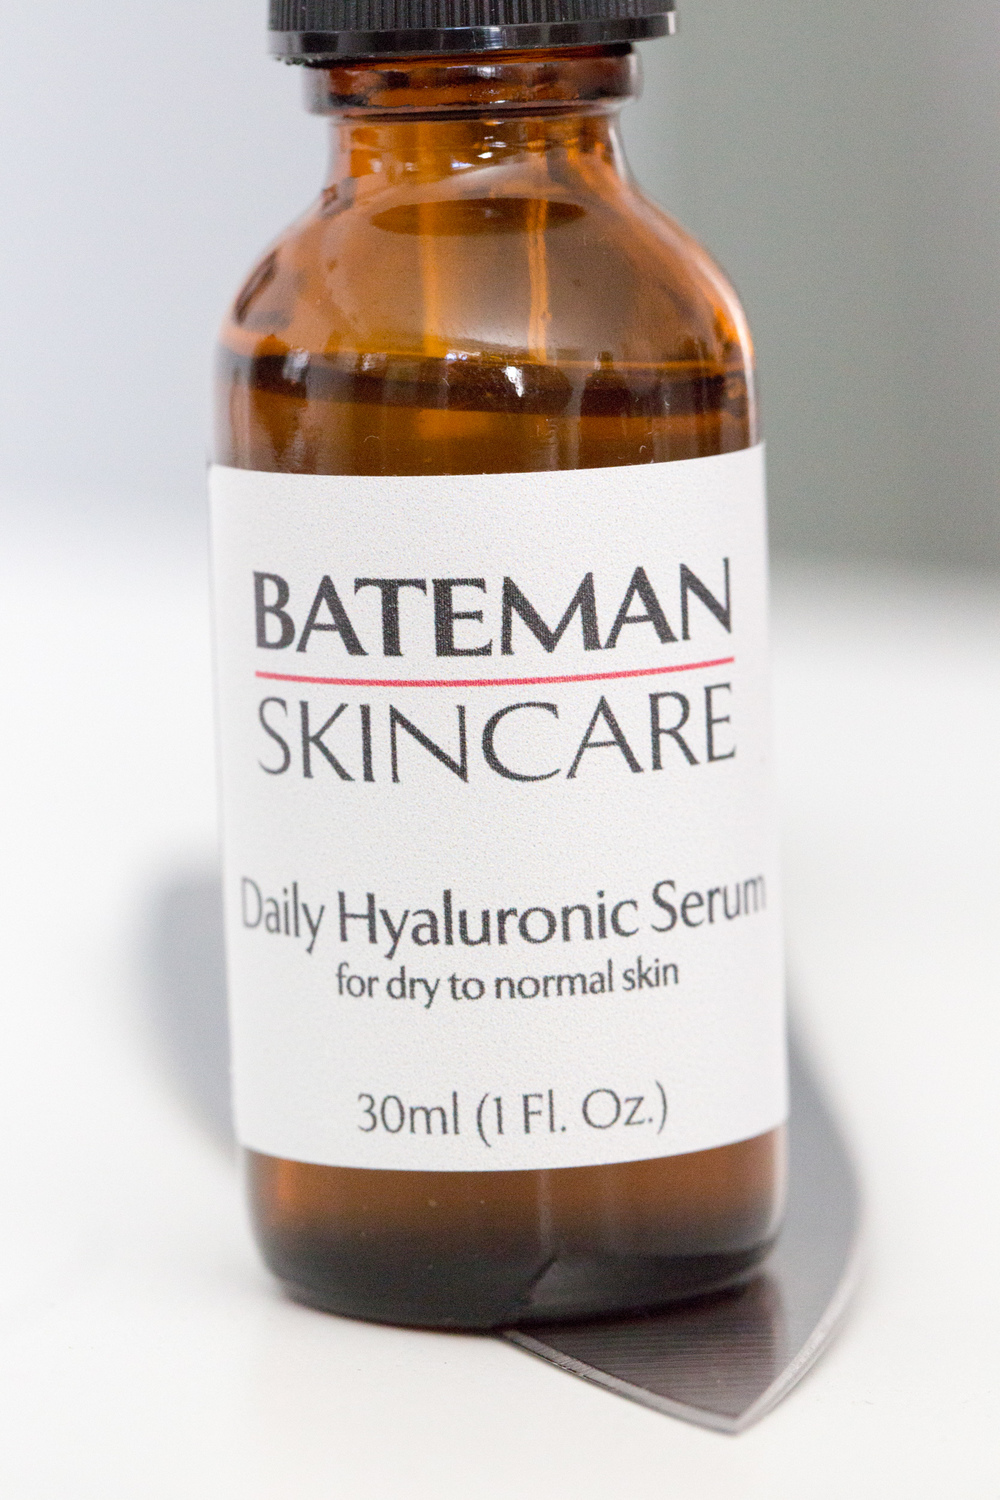 bateman skin care day 1-1176.jpg